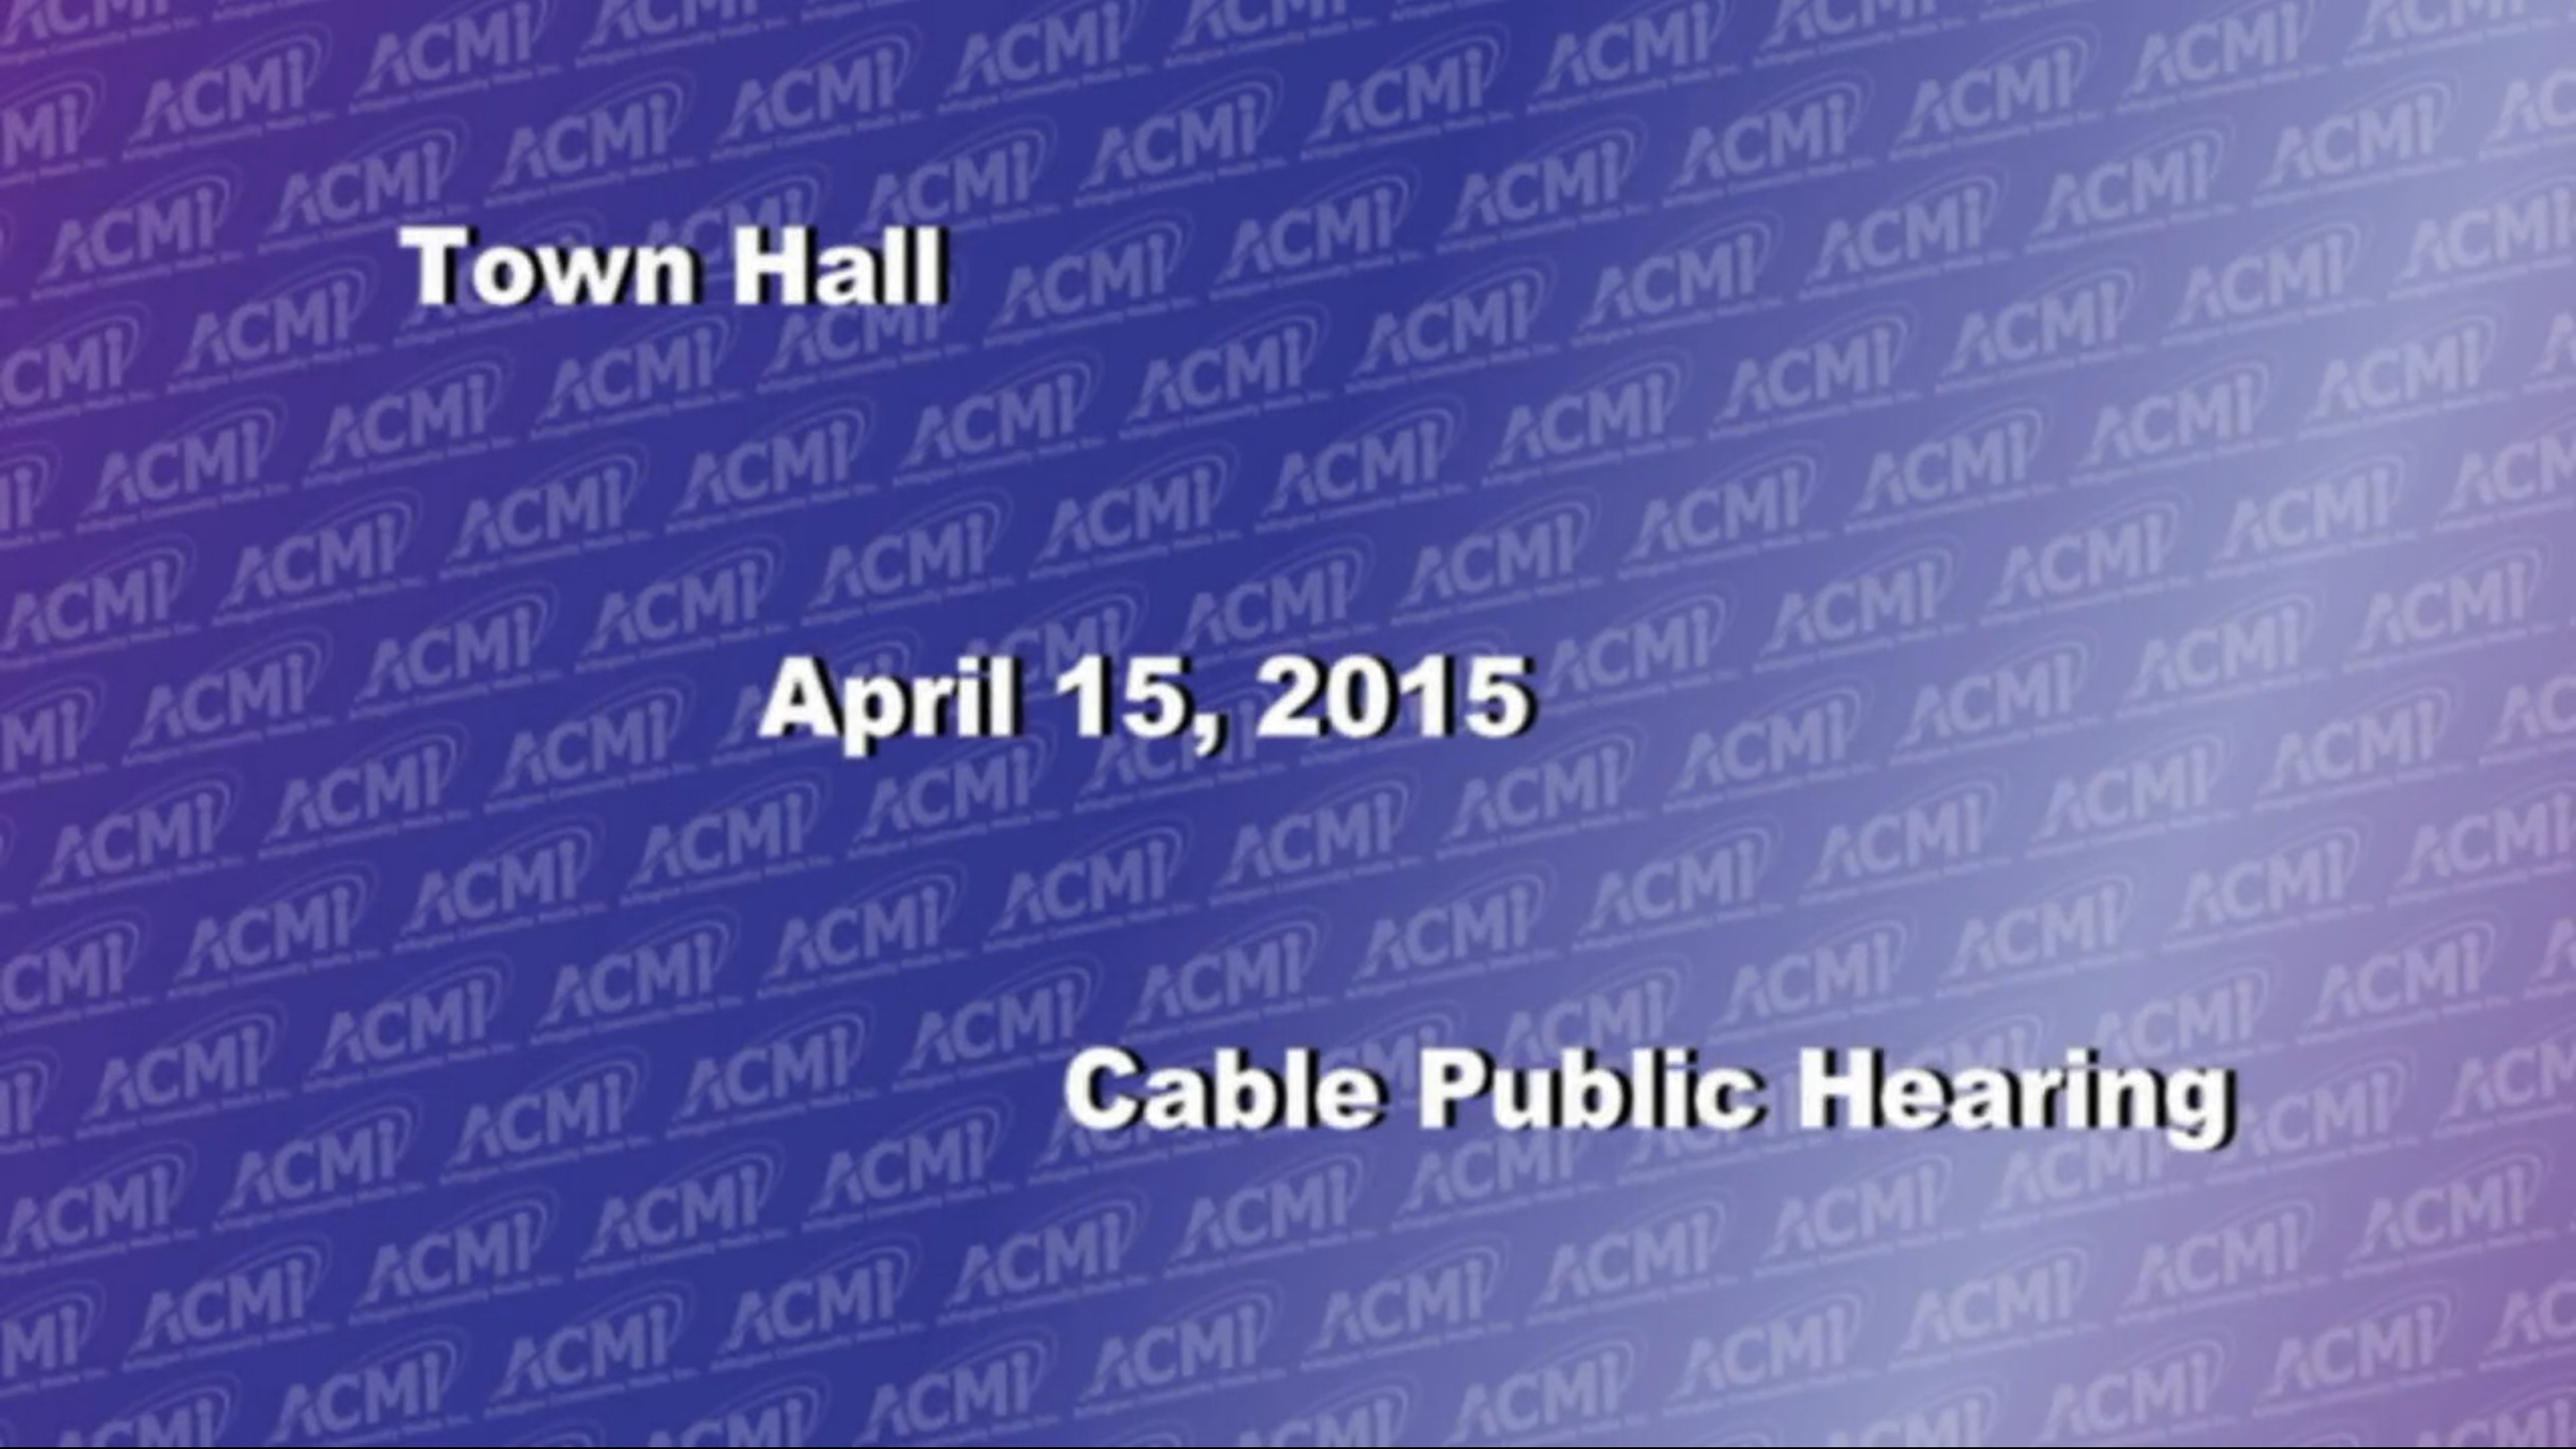 Public Hearing Cable Company Performance – April 15, 2015